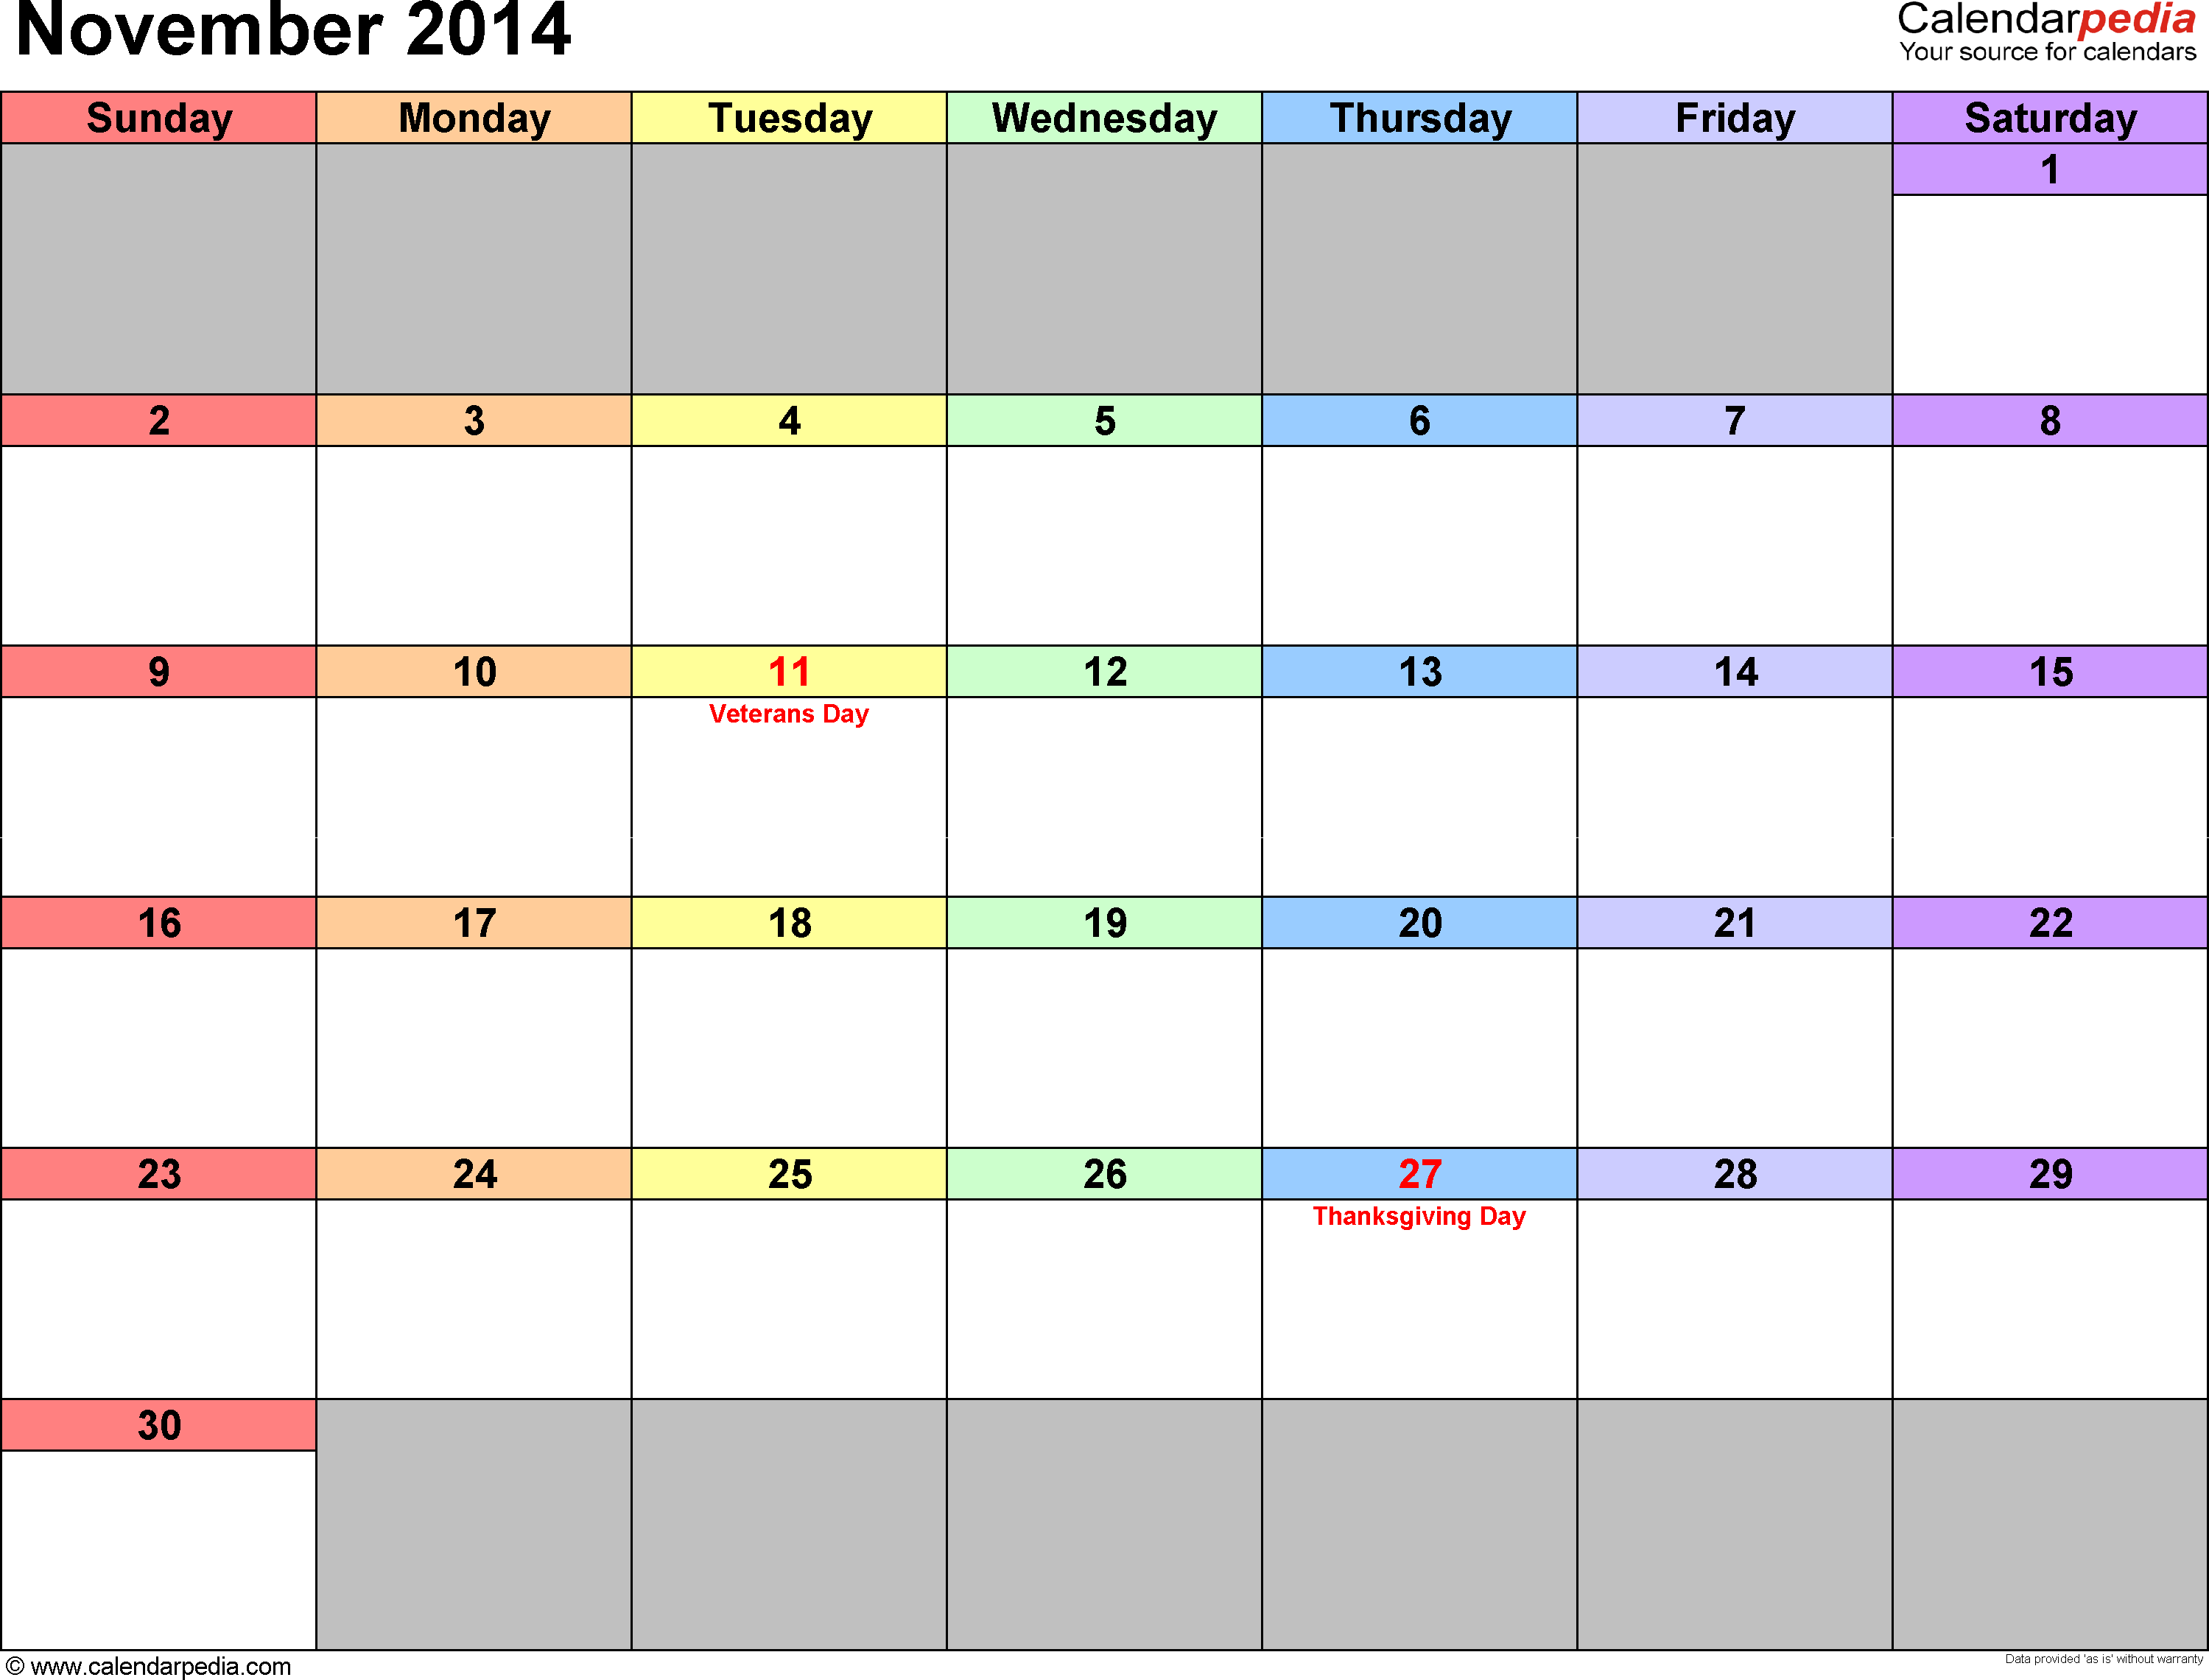 November 2014 Calendars For Word Excel Pdf